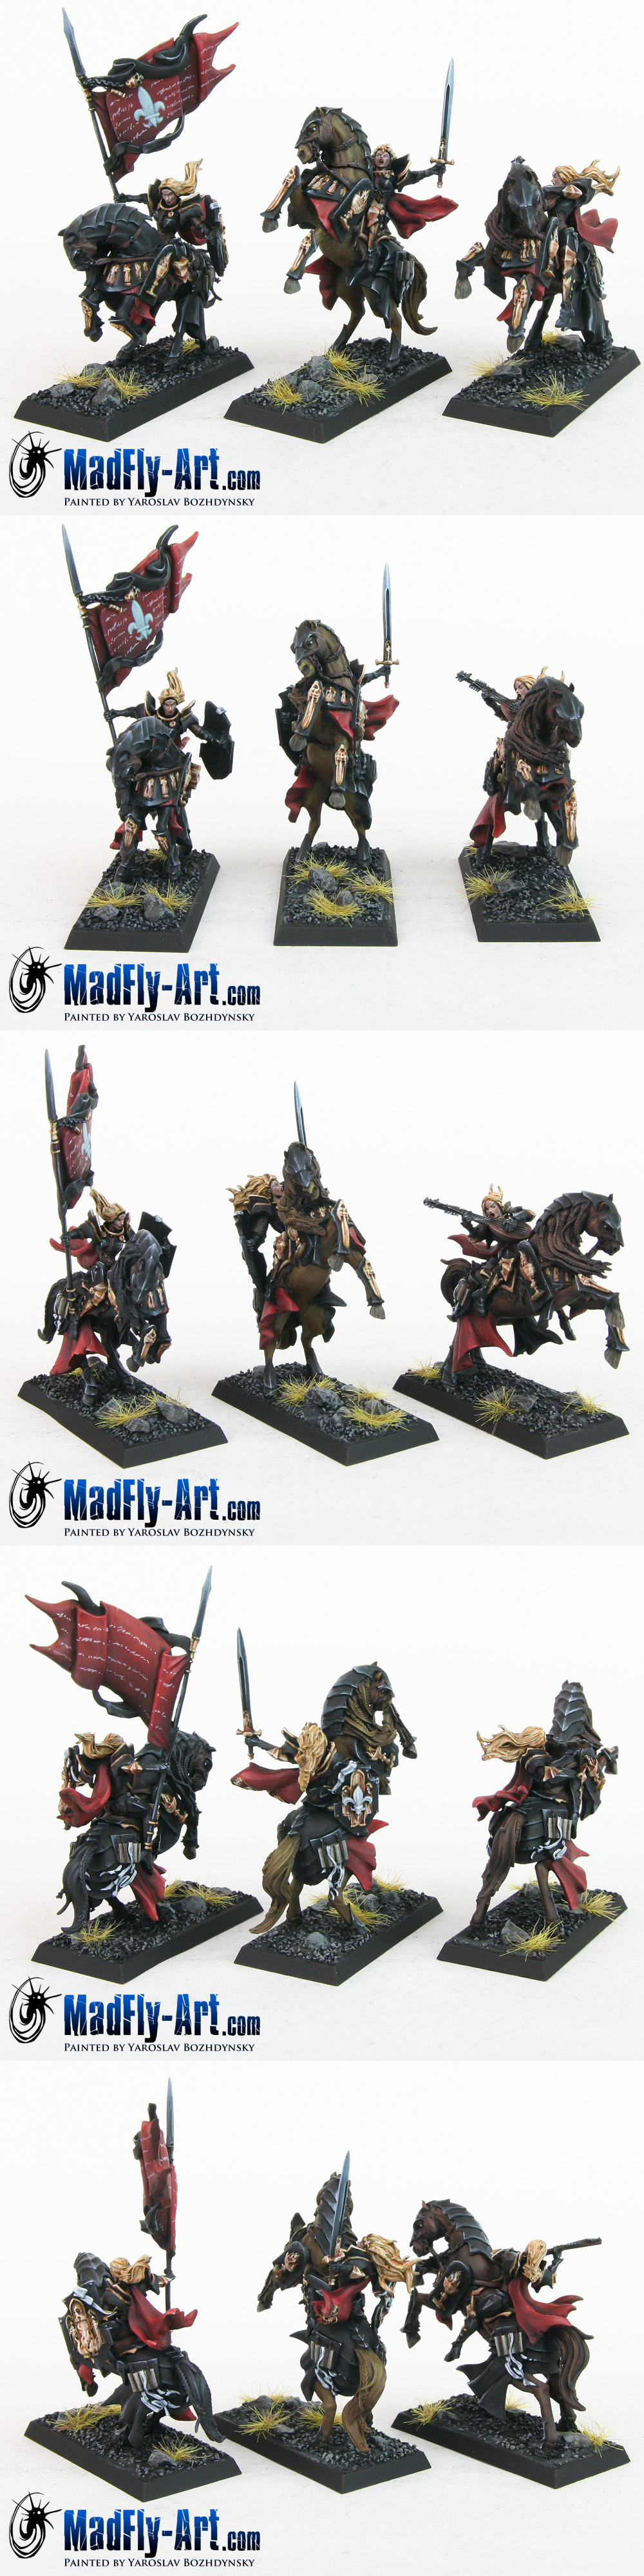 Mounted Knights Command Group